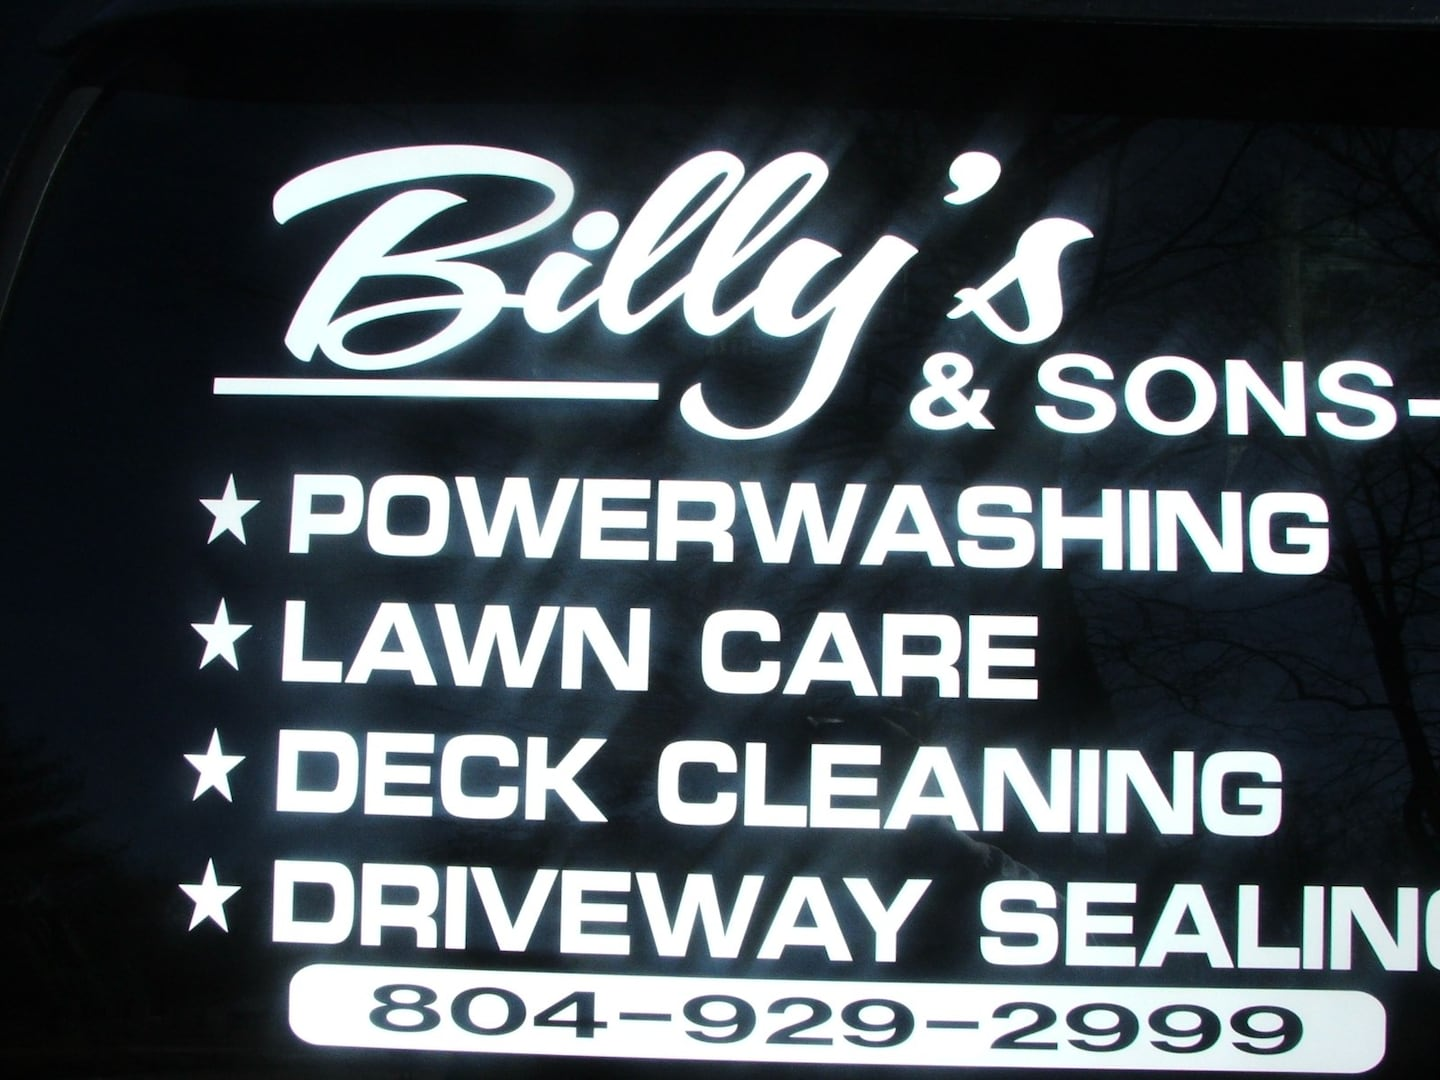 Billy's & Sons power washing